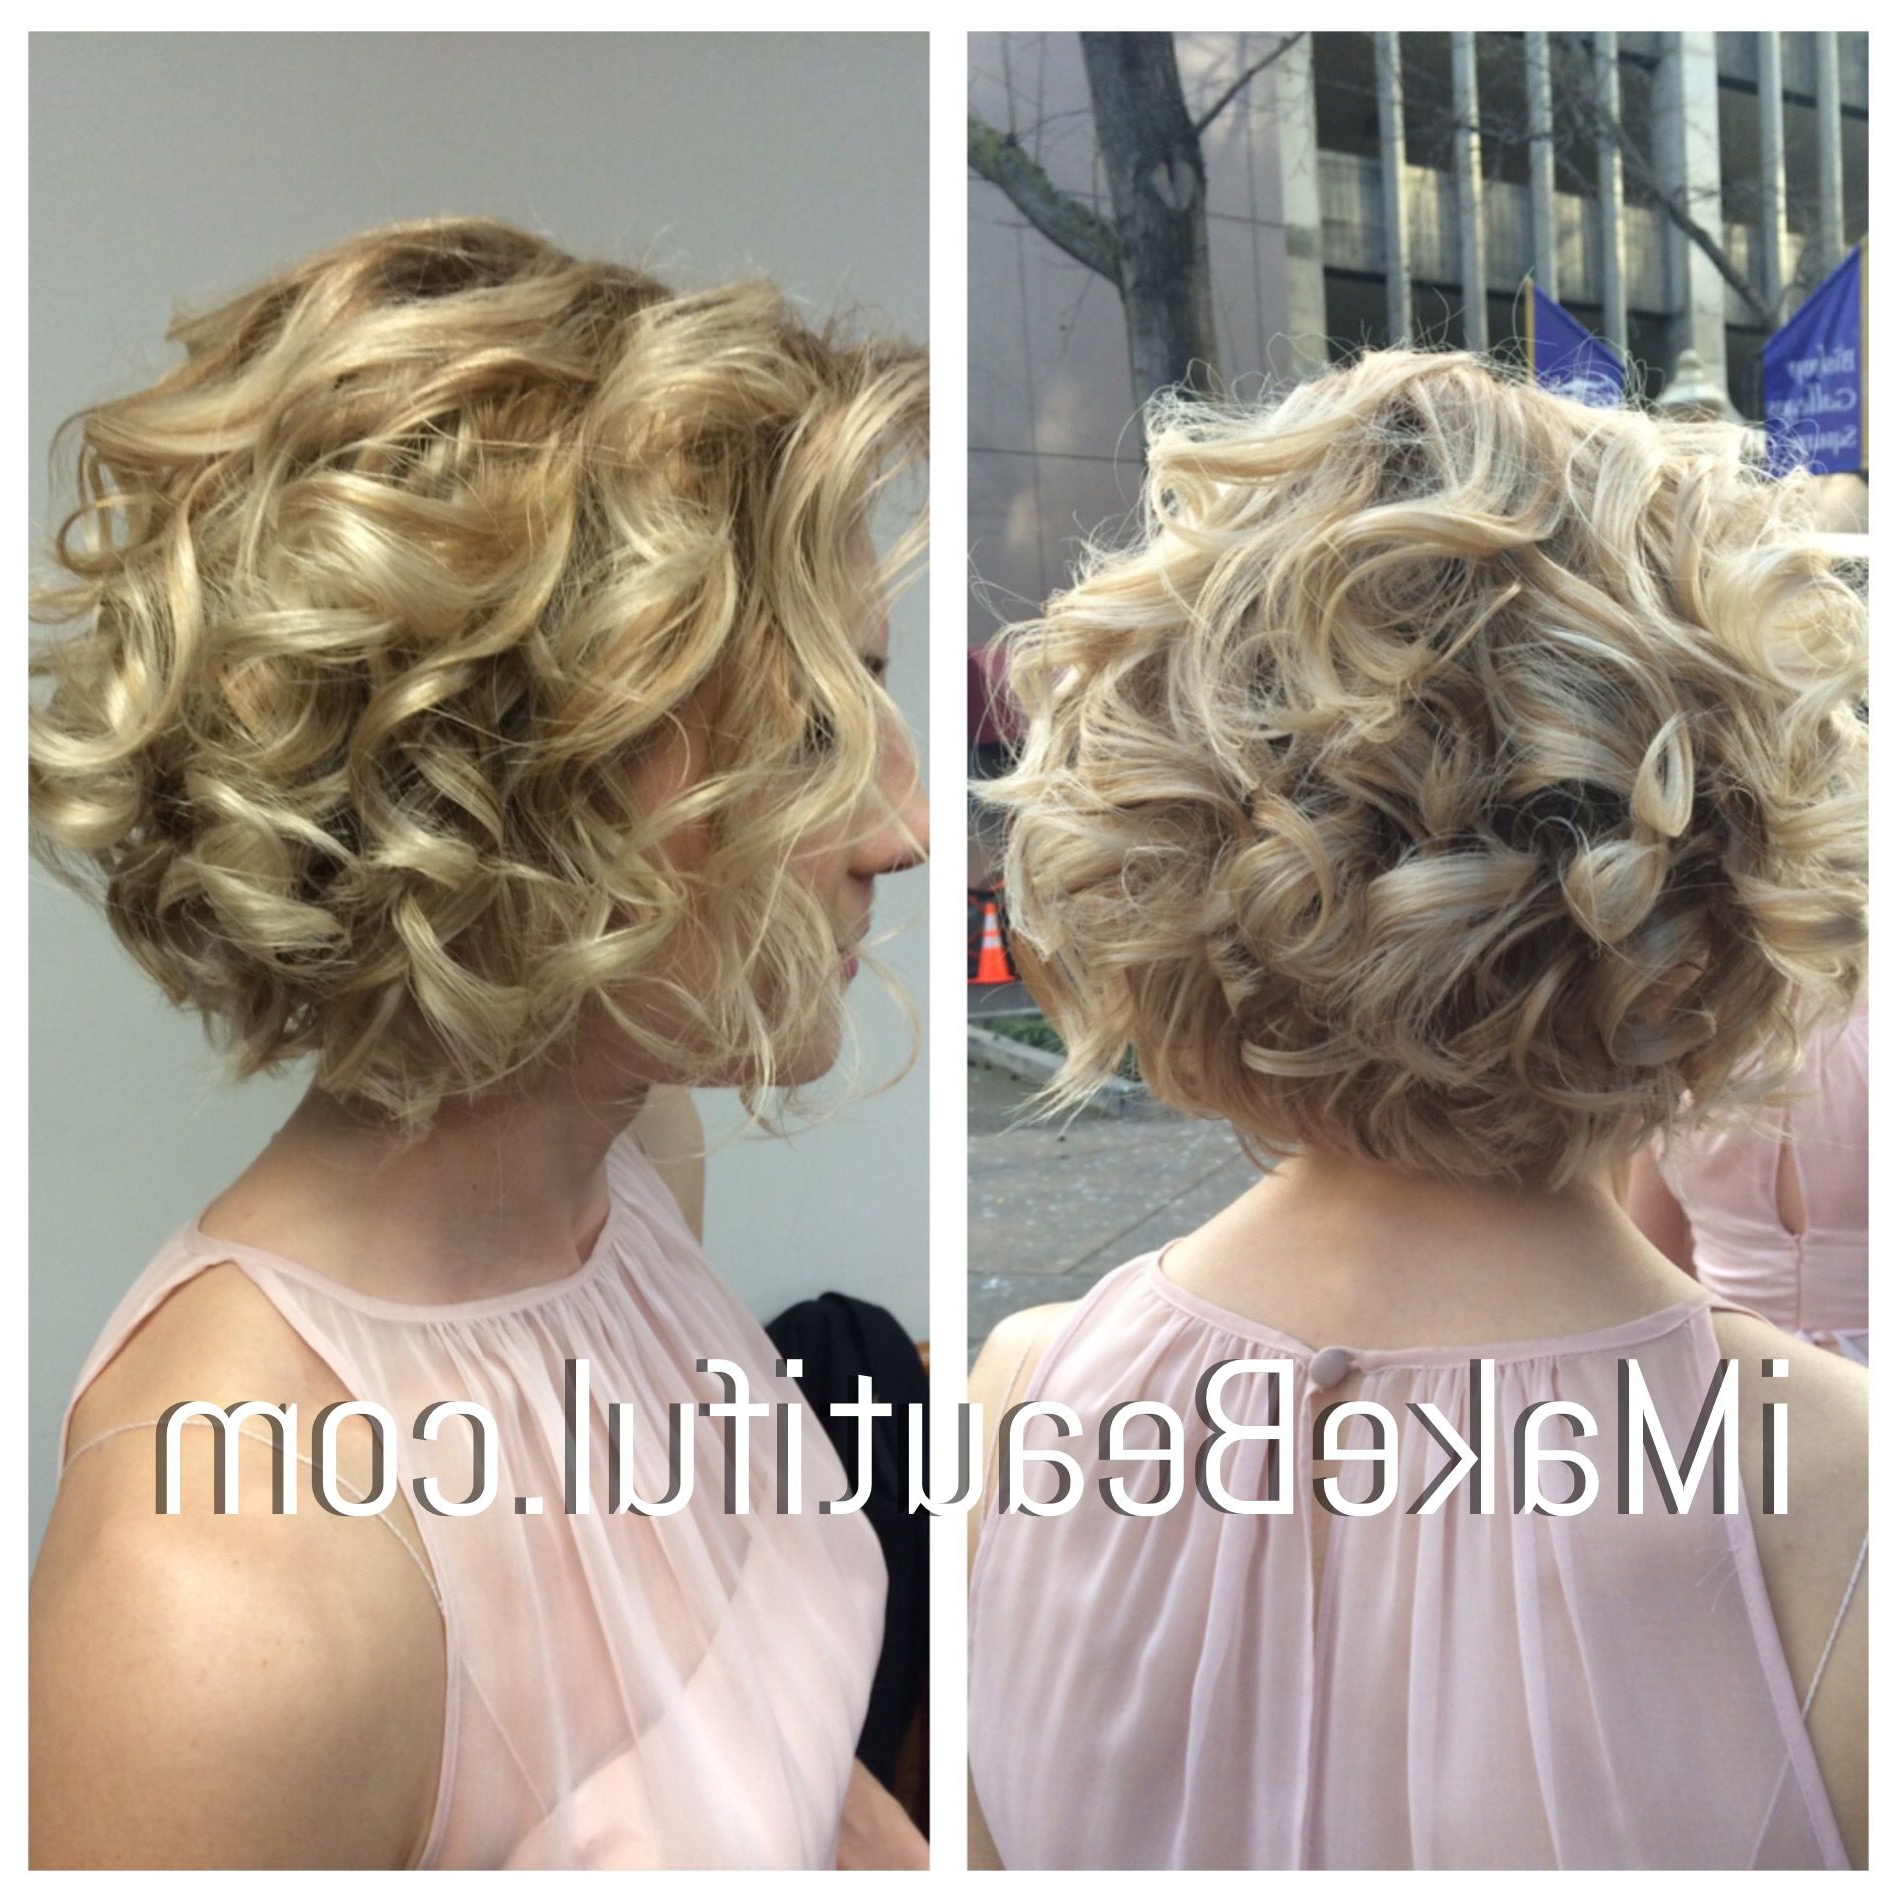 Most Recent Curly Bob Bridal Hairdos With Side Twists Intended For Bridal Hair For Short Hair (View 16 of 20)